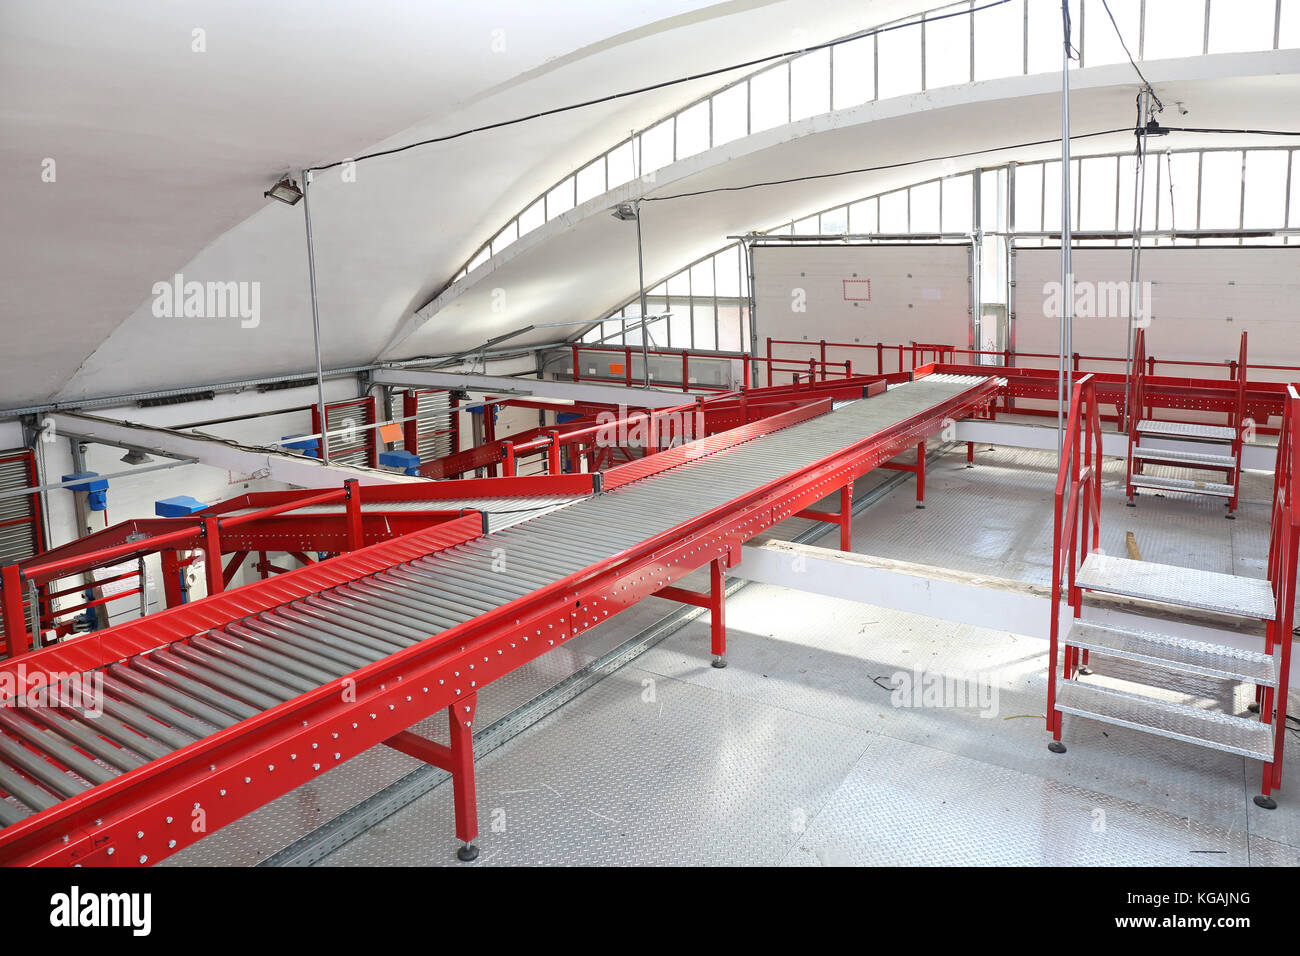 Long Conveyor Belt in Distribution and Delivery Warehouse - Stock Image